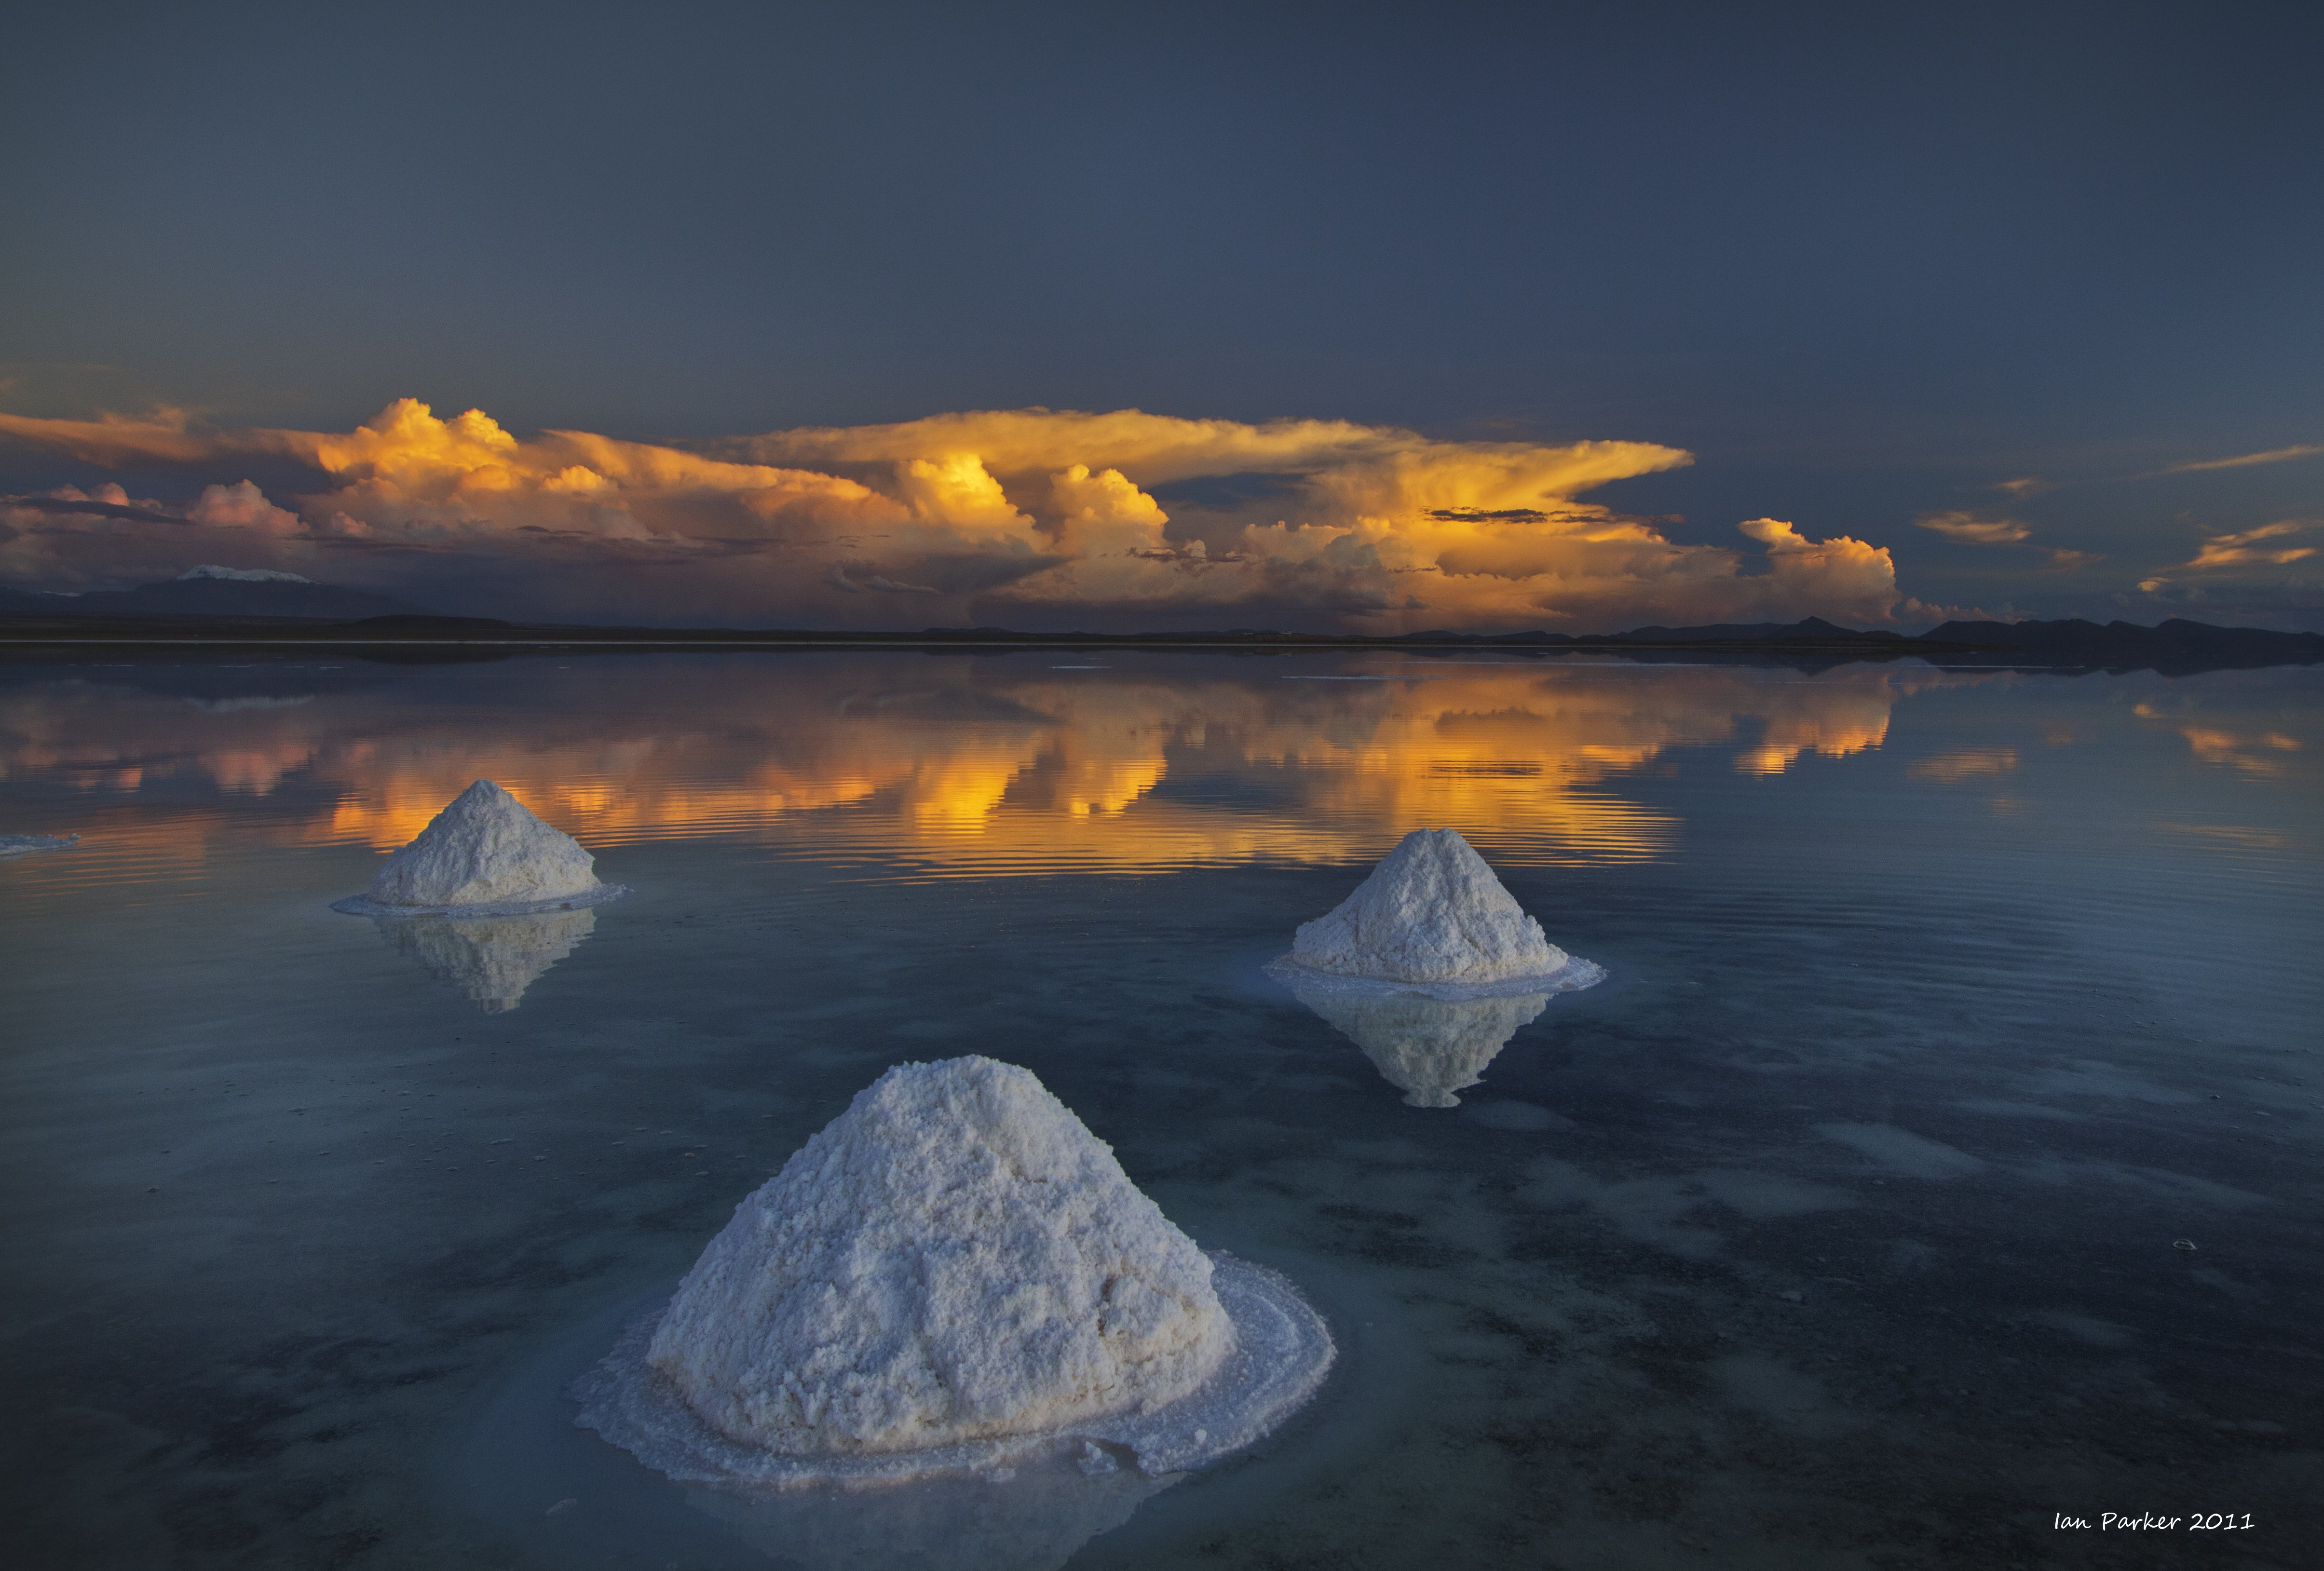 uyuni wallpapers 4k for your phone and desktop screen